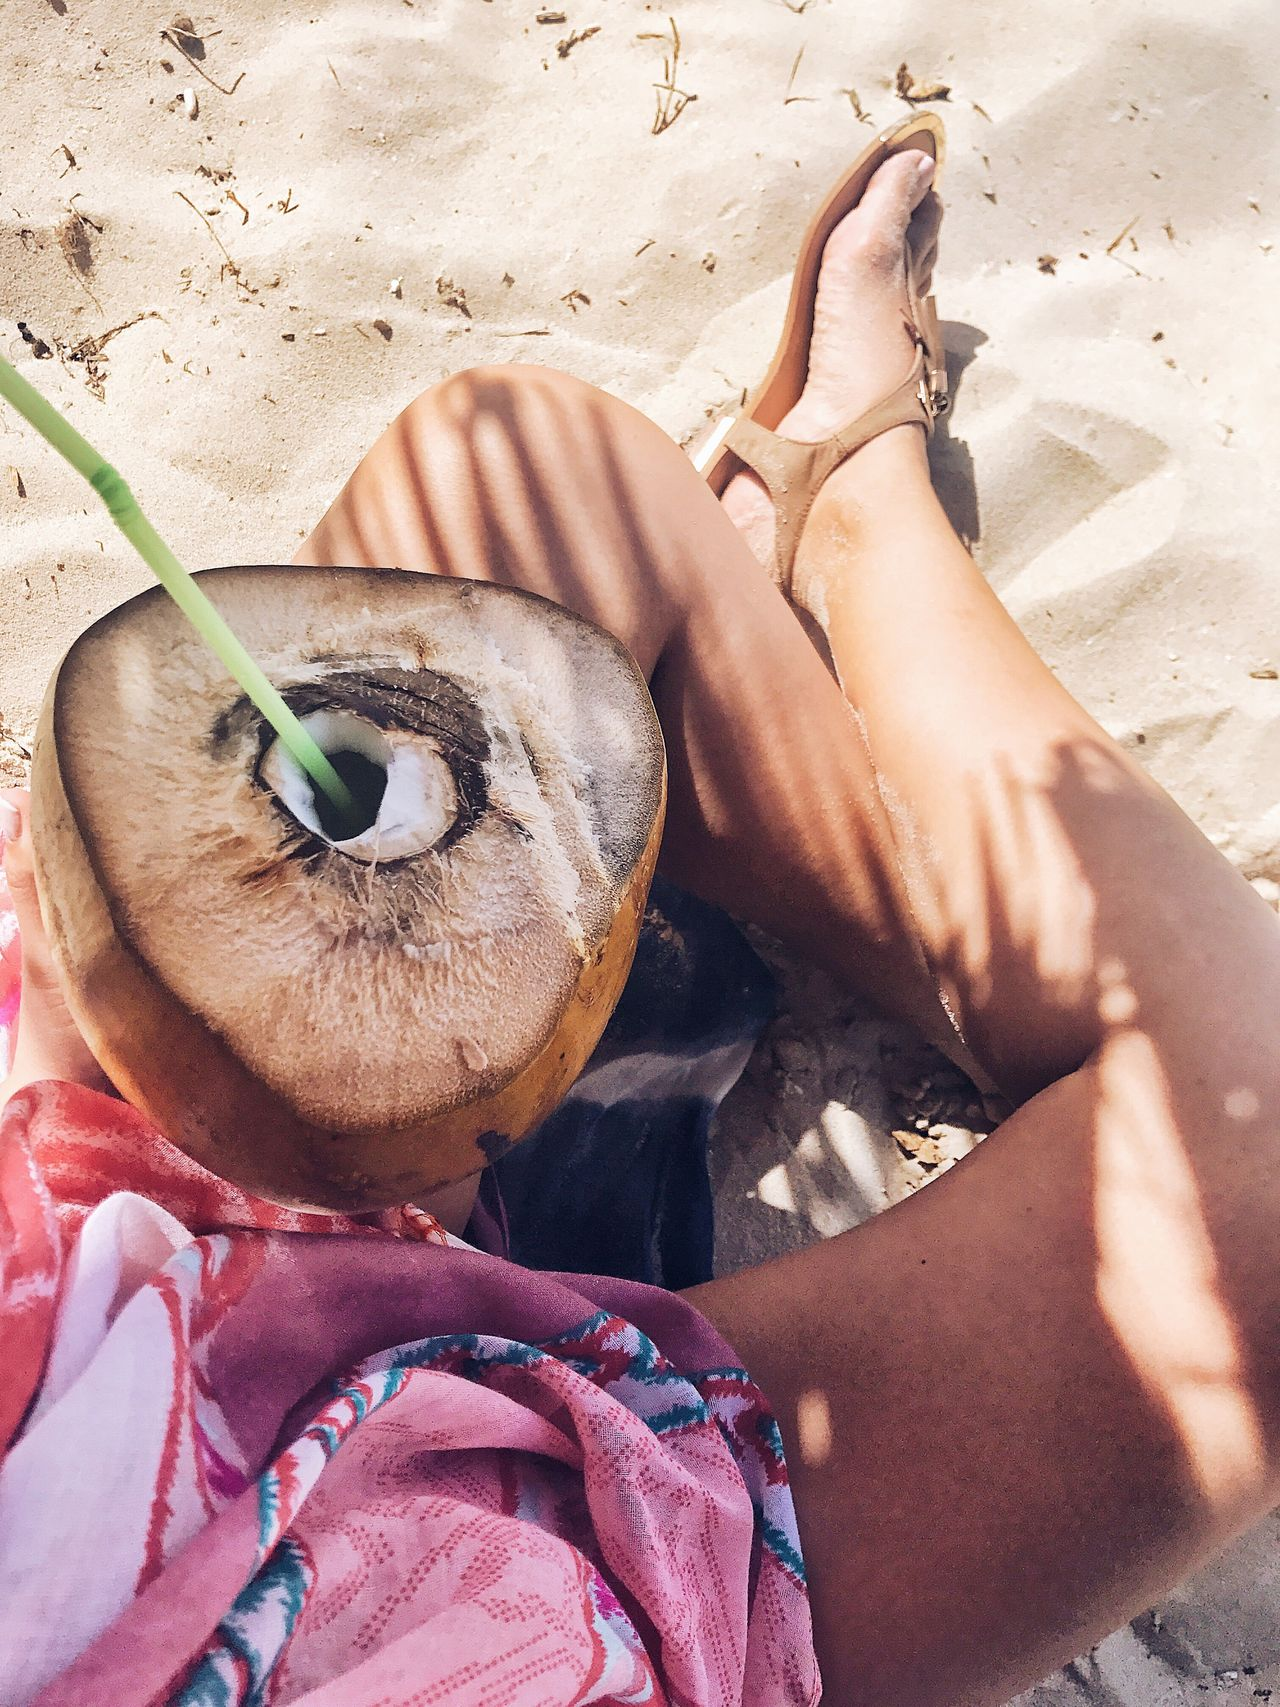 A day can't go wrong at the beach next to a coconut filled with cold coconut water... Beach Real People Sand Lifestyles Summer Human Body Part Human Leg Sitting Nature Food Human Hand Close-up Cocktail Coconut Beach Life Chilling Relaxing Vacations Summertime Cuba Varadero Piña Colada Drinking Fresh